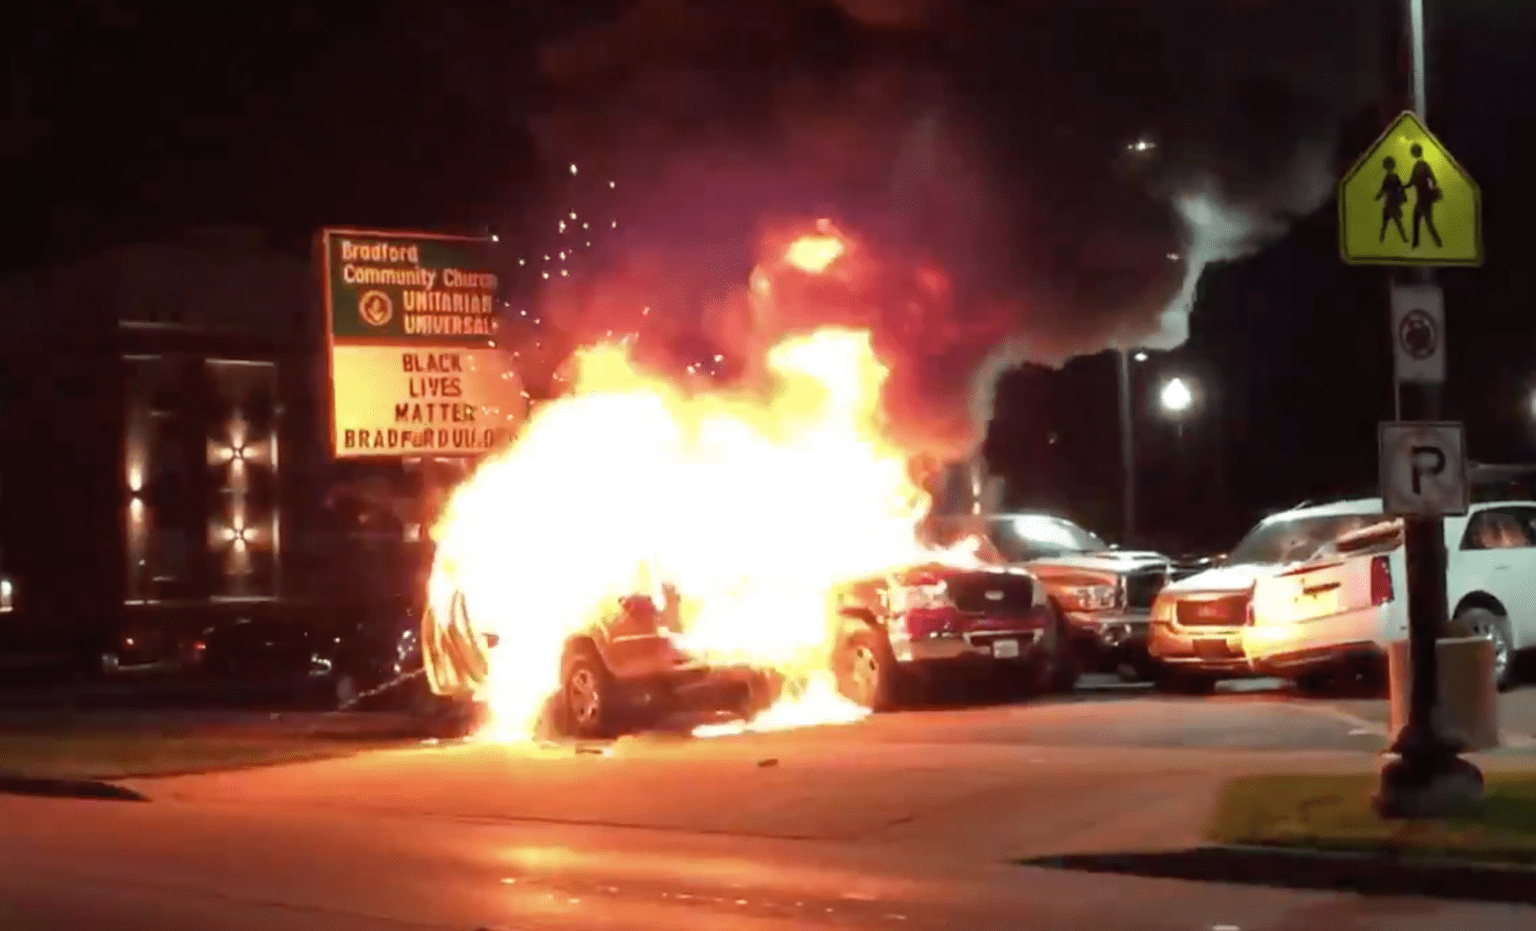 Car dealership torched, officer hit in the head with a brick, widespread looting and police attacked in night of mayhem